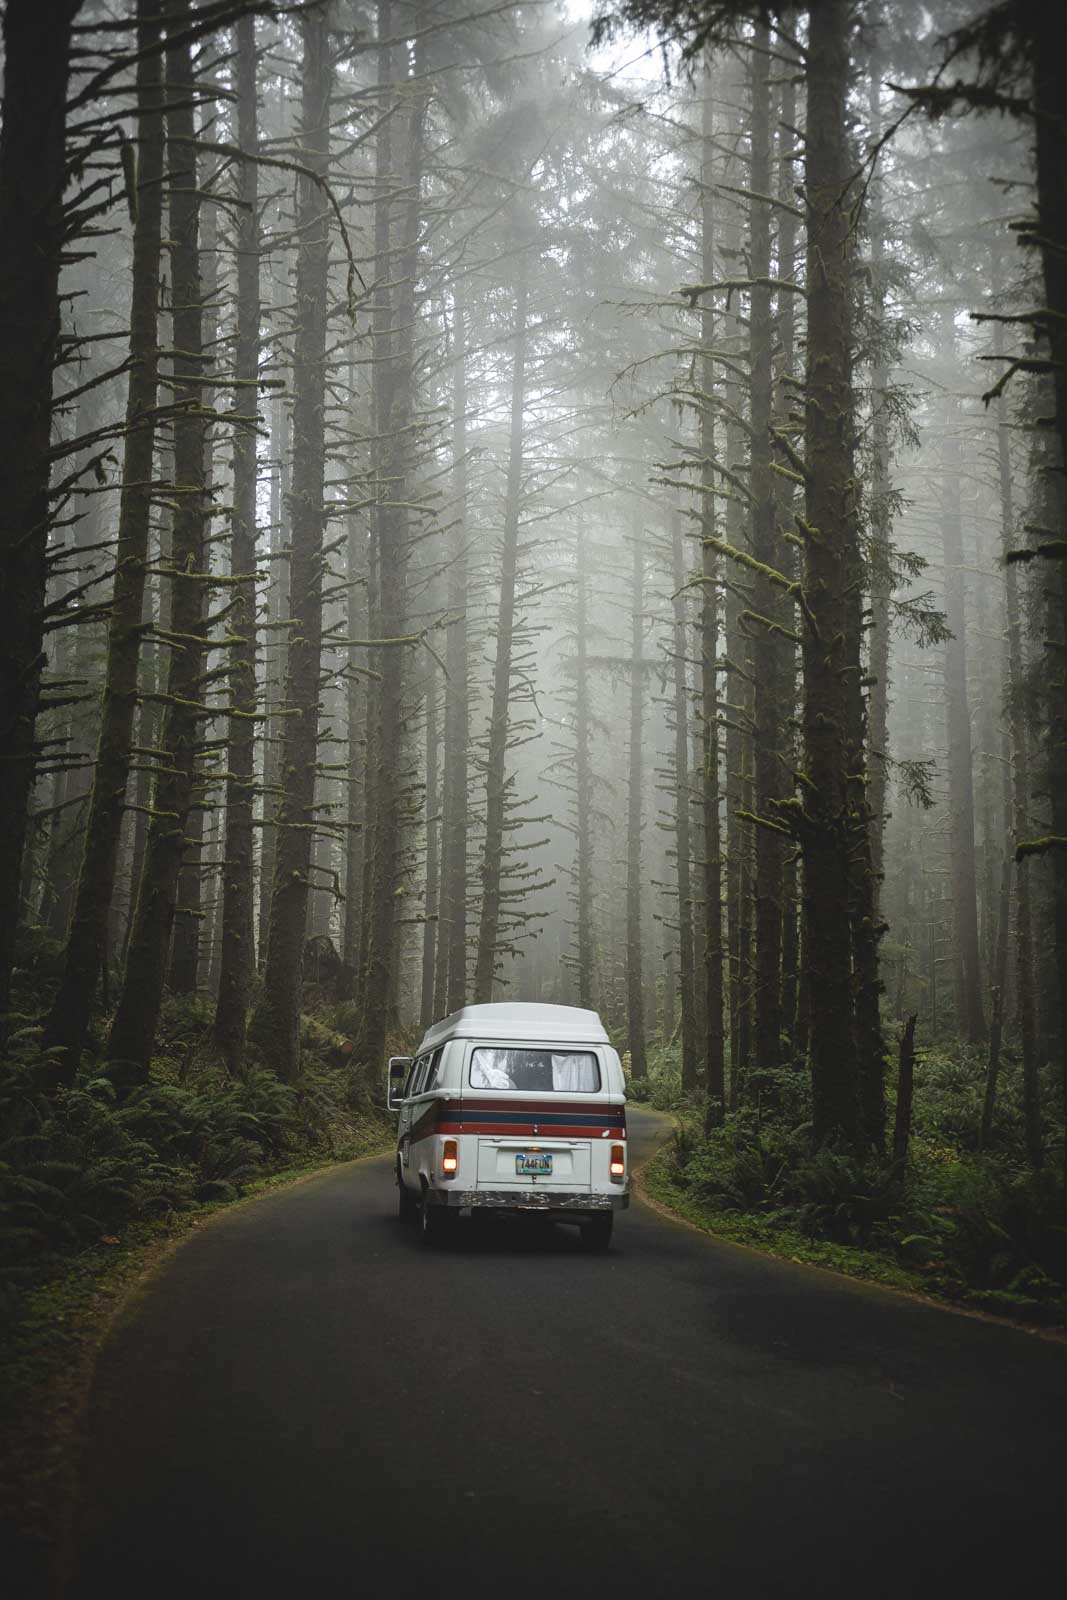 VW van on road in the forest at Ecola State Park, one of the Oregon Coast State Parks